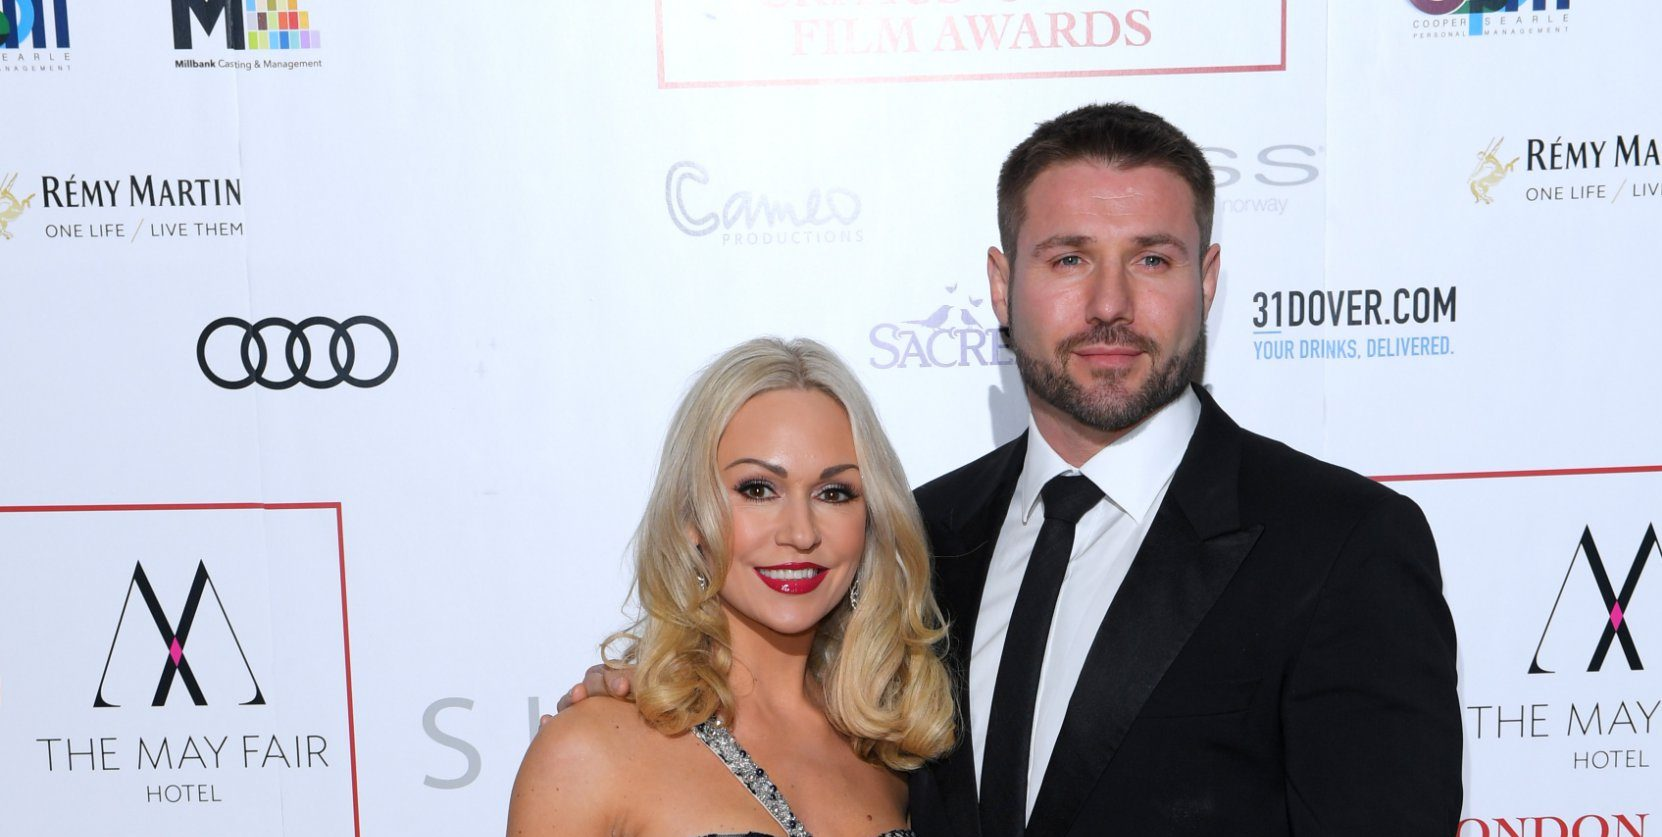 Mandatory Credit: Photo by David Fisher/REX/Shutterstock (7946109cm) Kristina Rihanoff and Ben Cohen The London Critics' Circle Film Awards, UK - 22 Jan 2017